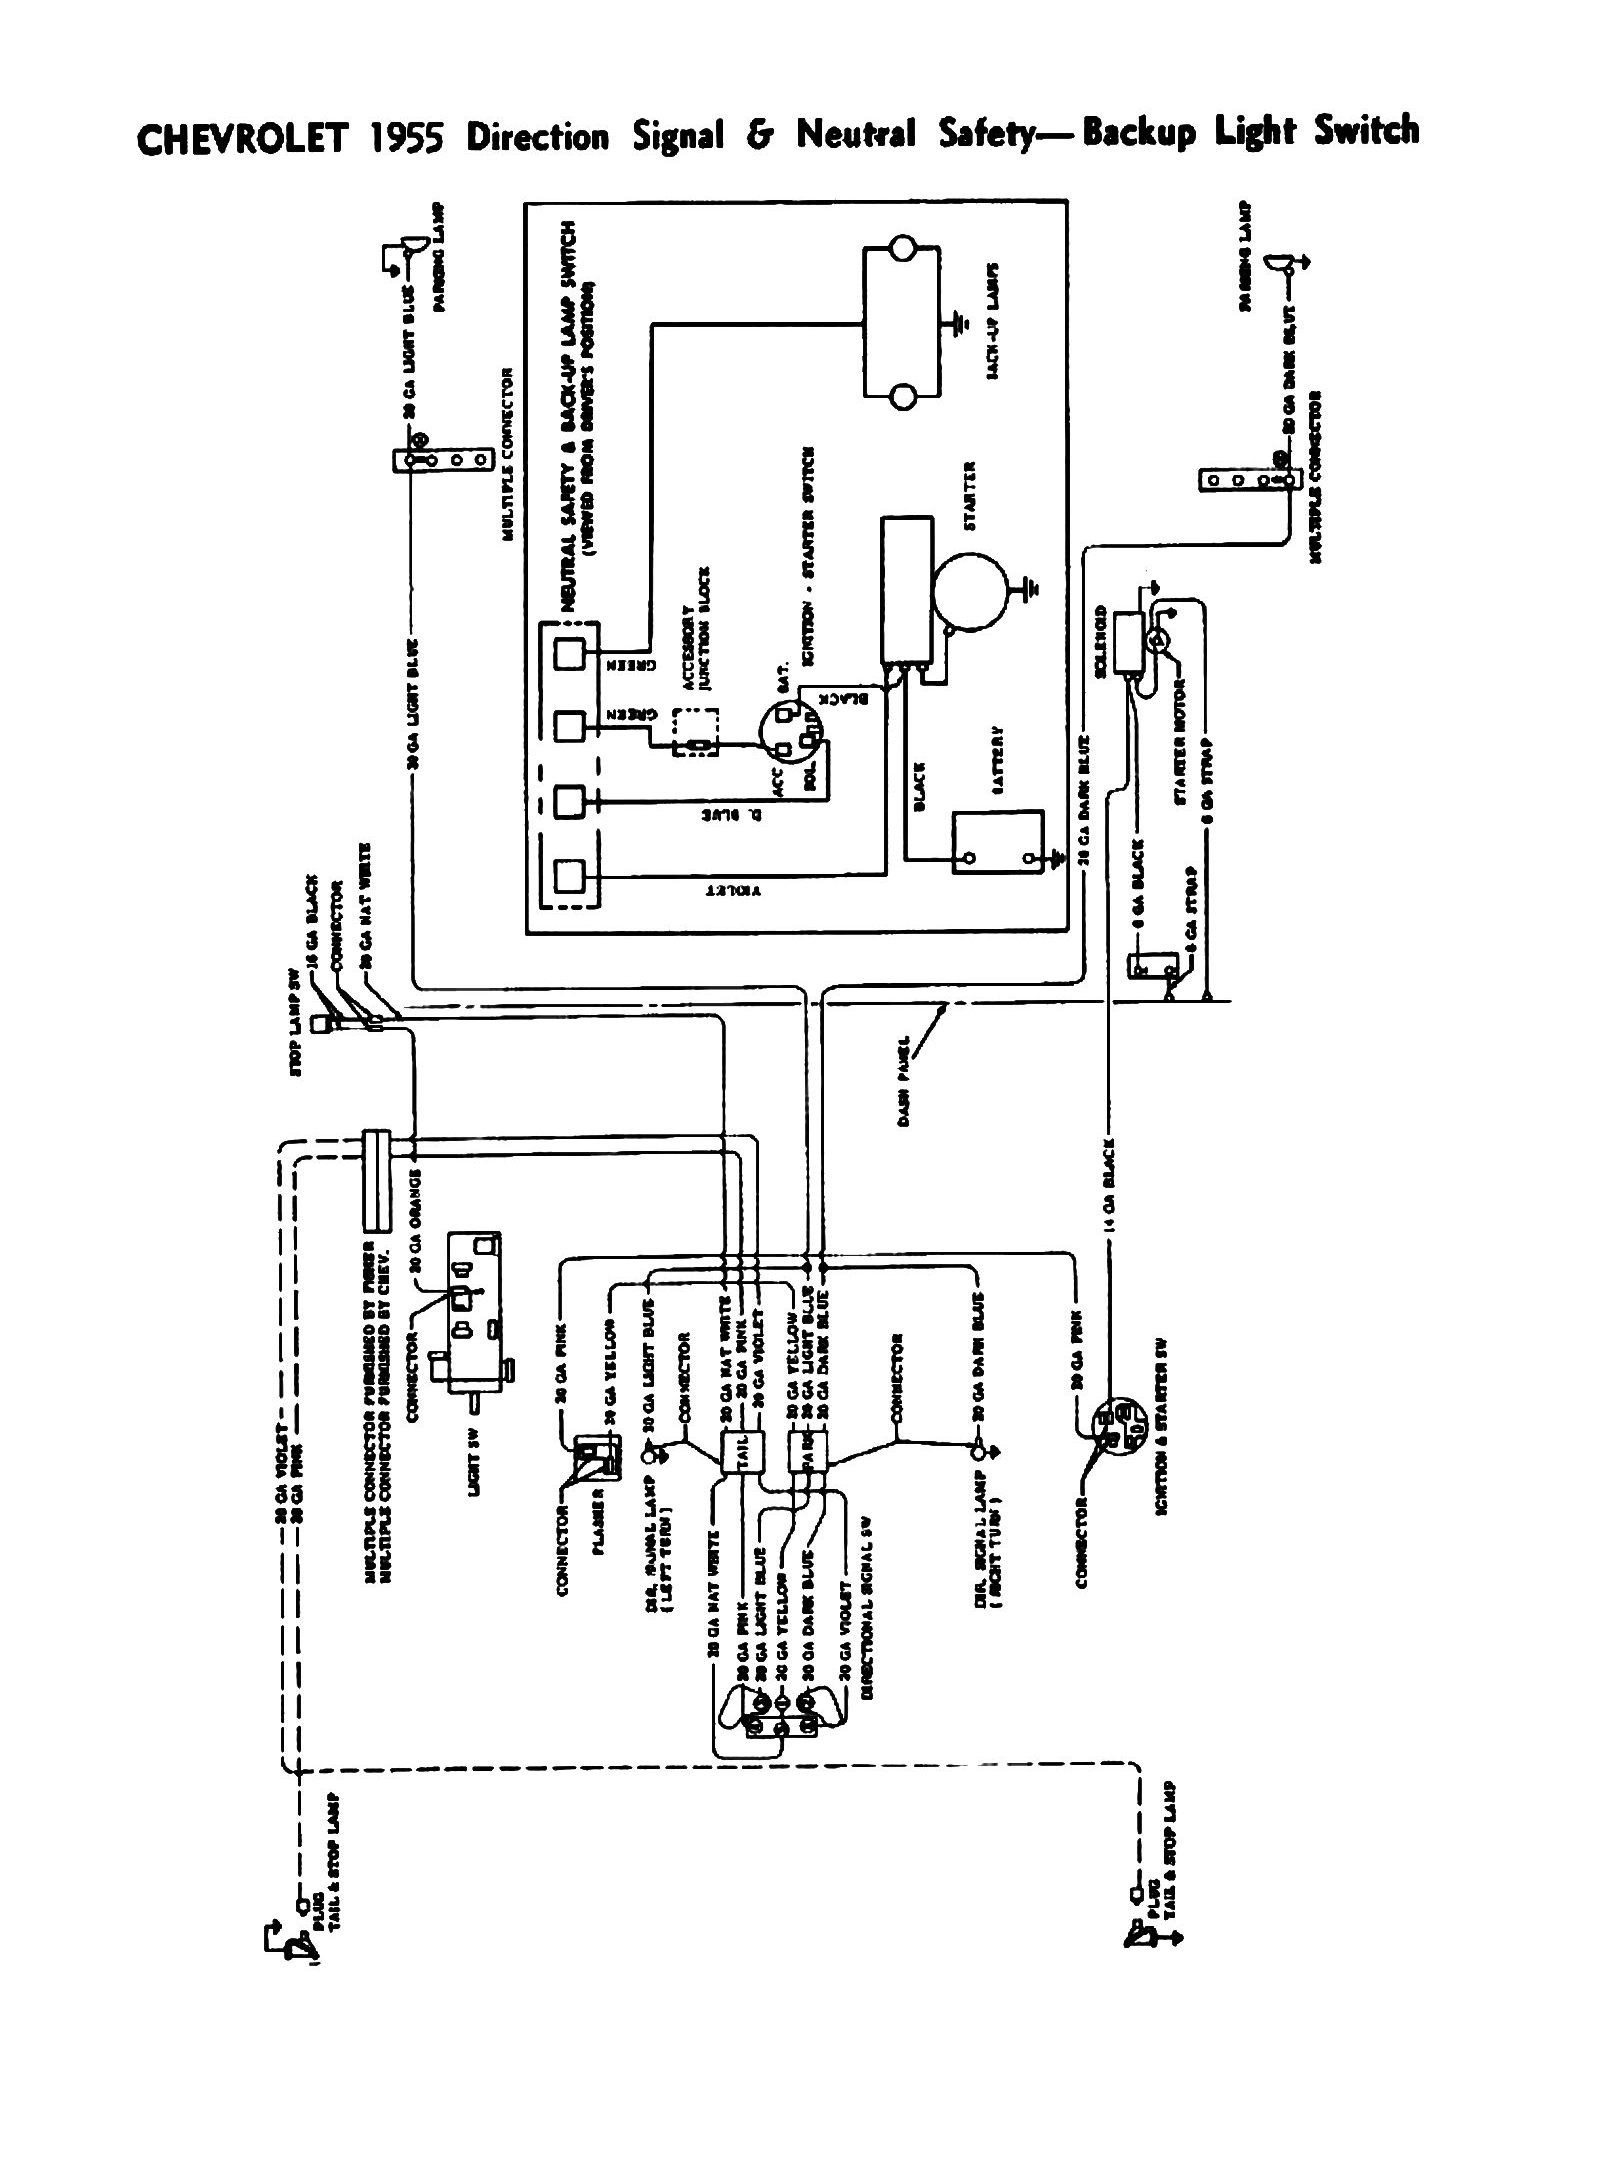 1954 chevy truck wiring diagram on 1951 pontiac wiring diagram